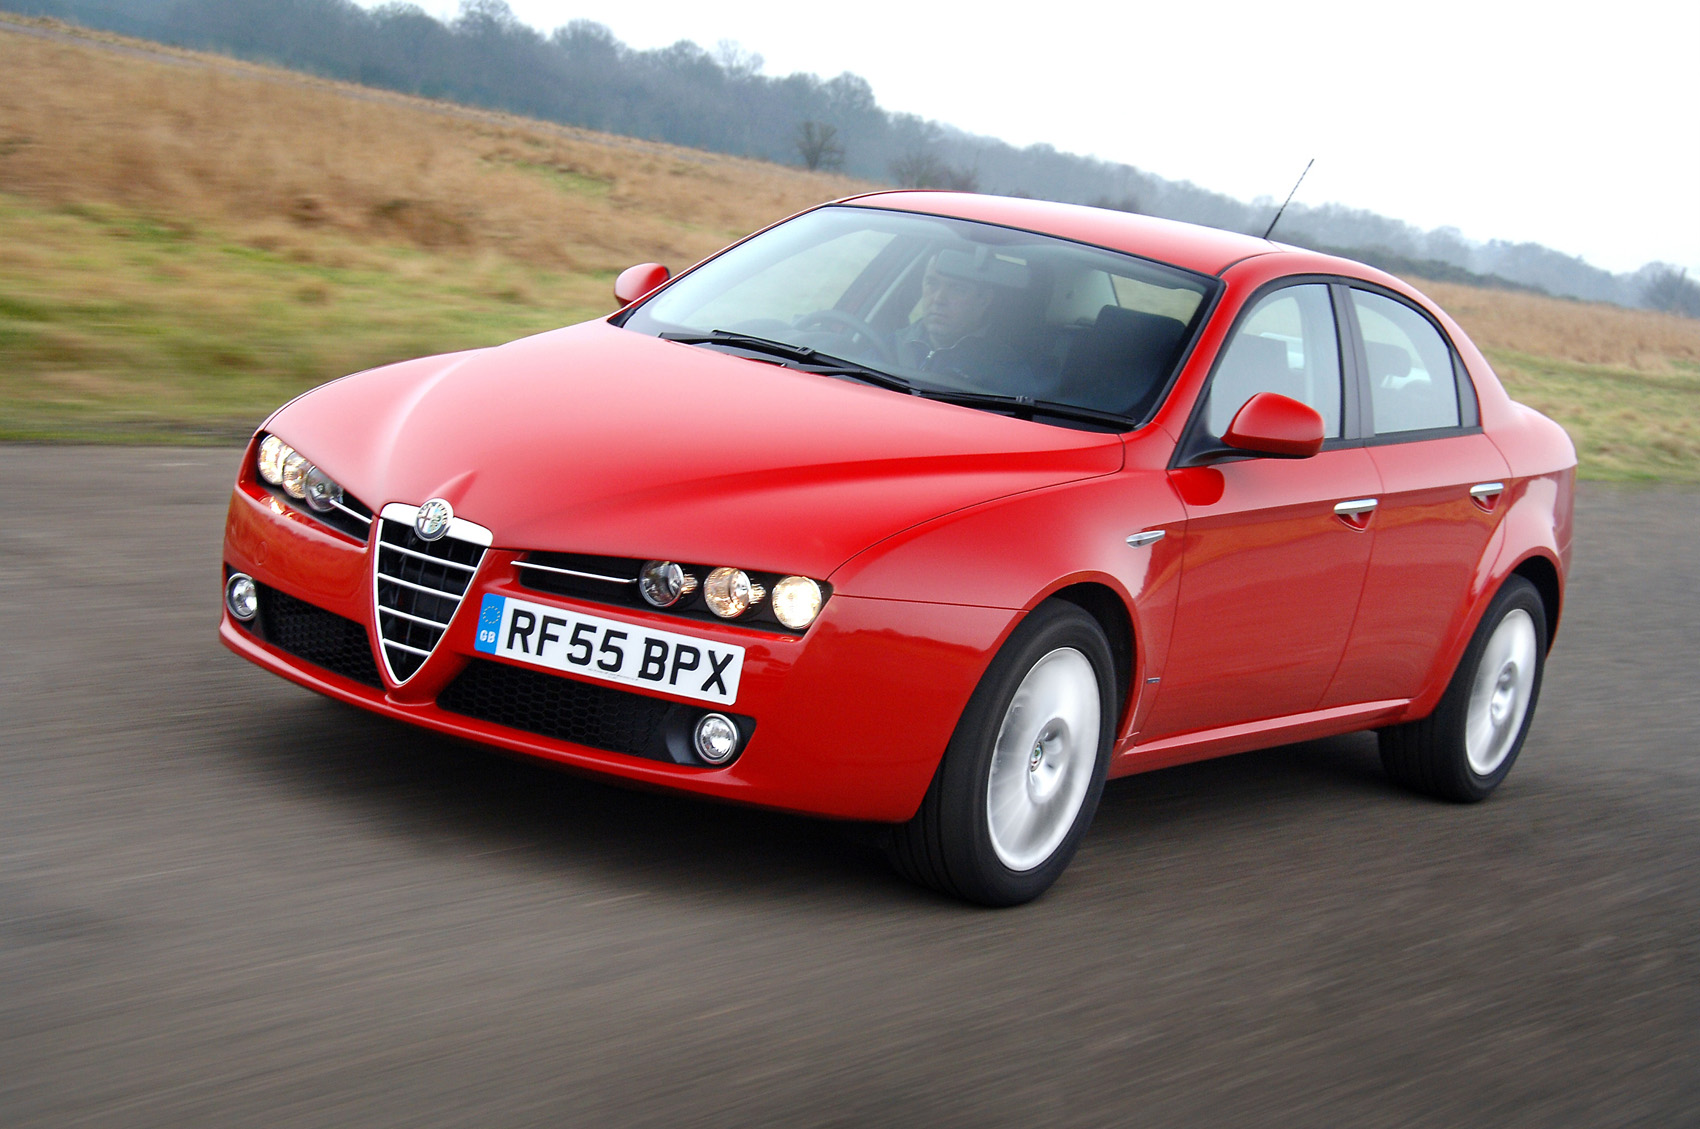 Alfa Romeo 159 2.4 JTD Ti (2007) review by CAR Magazine